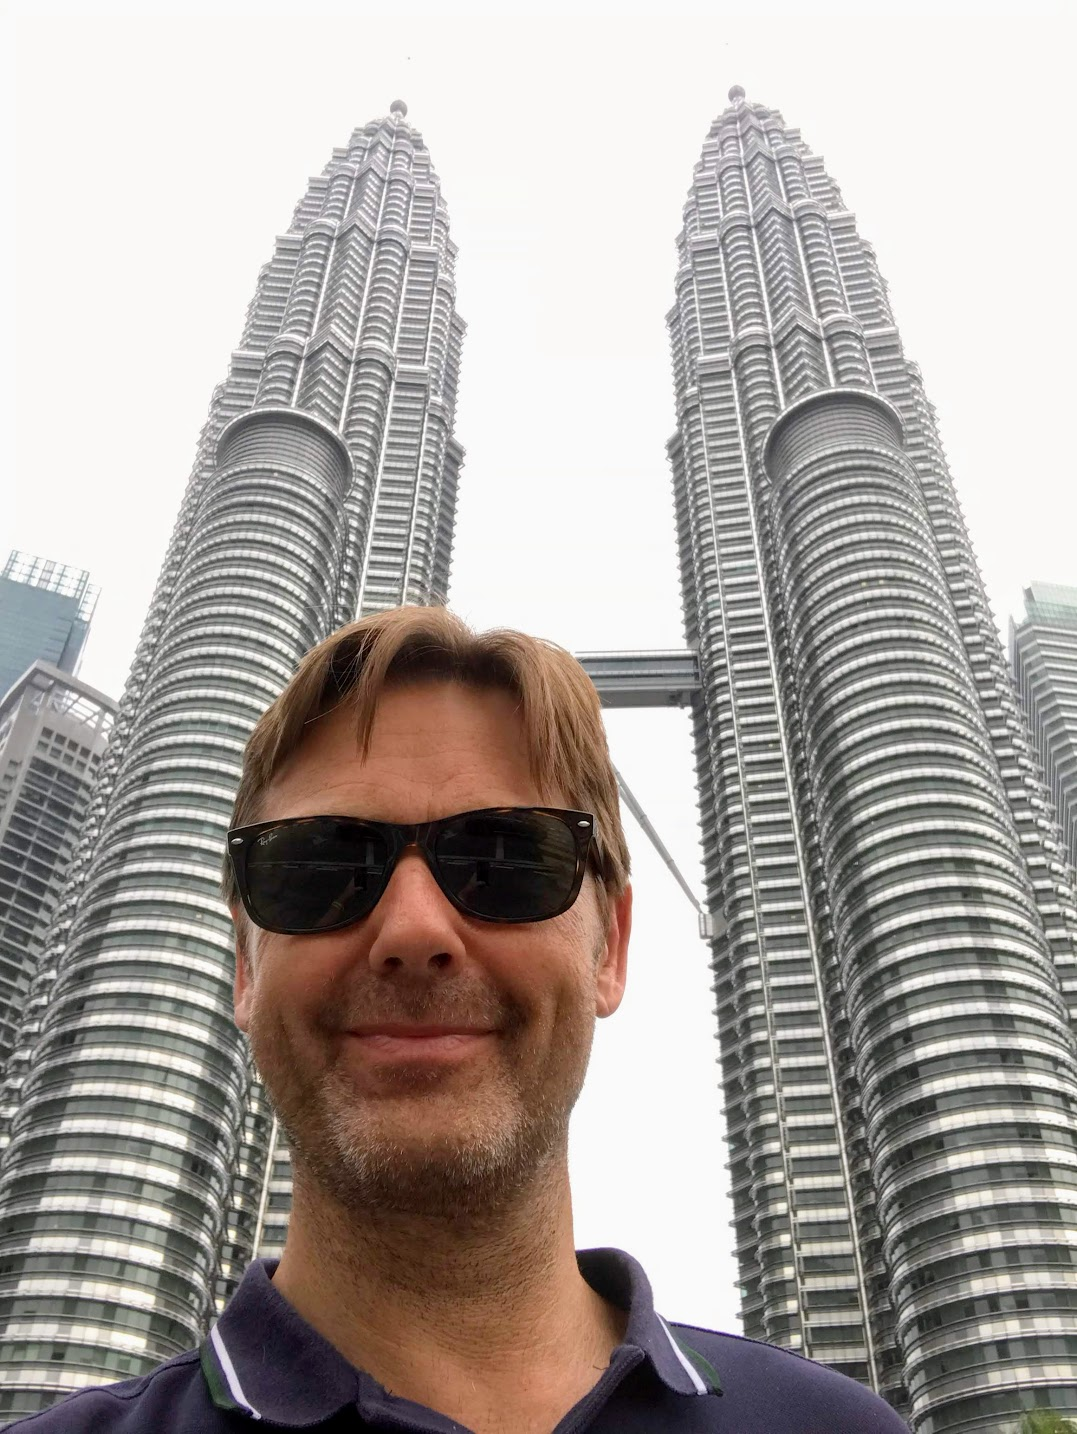 Alexander Koene, proud founder of BR-ND, in front of Petronas Twin Towers in KL